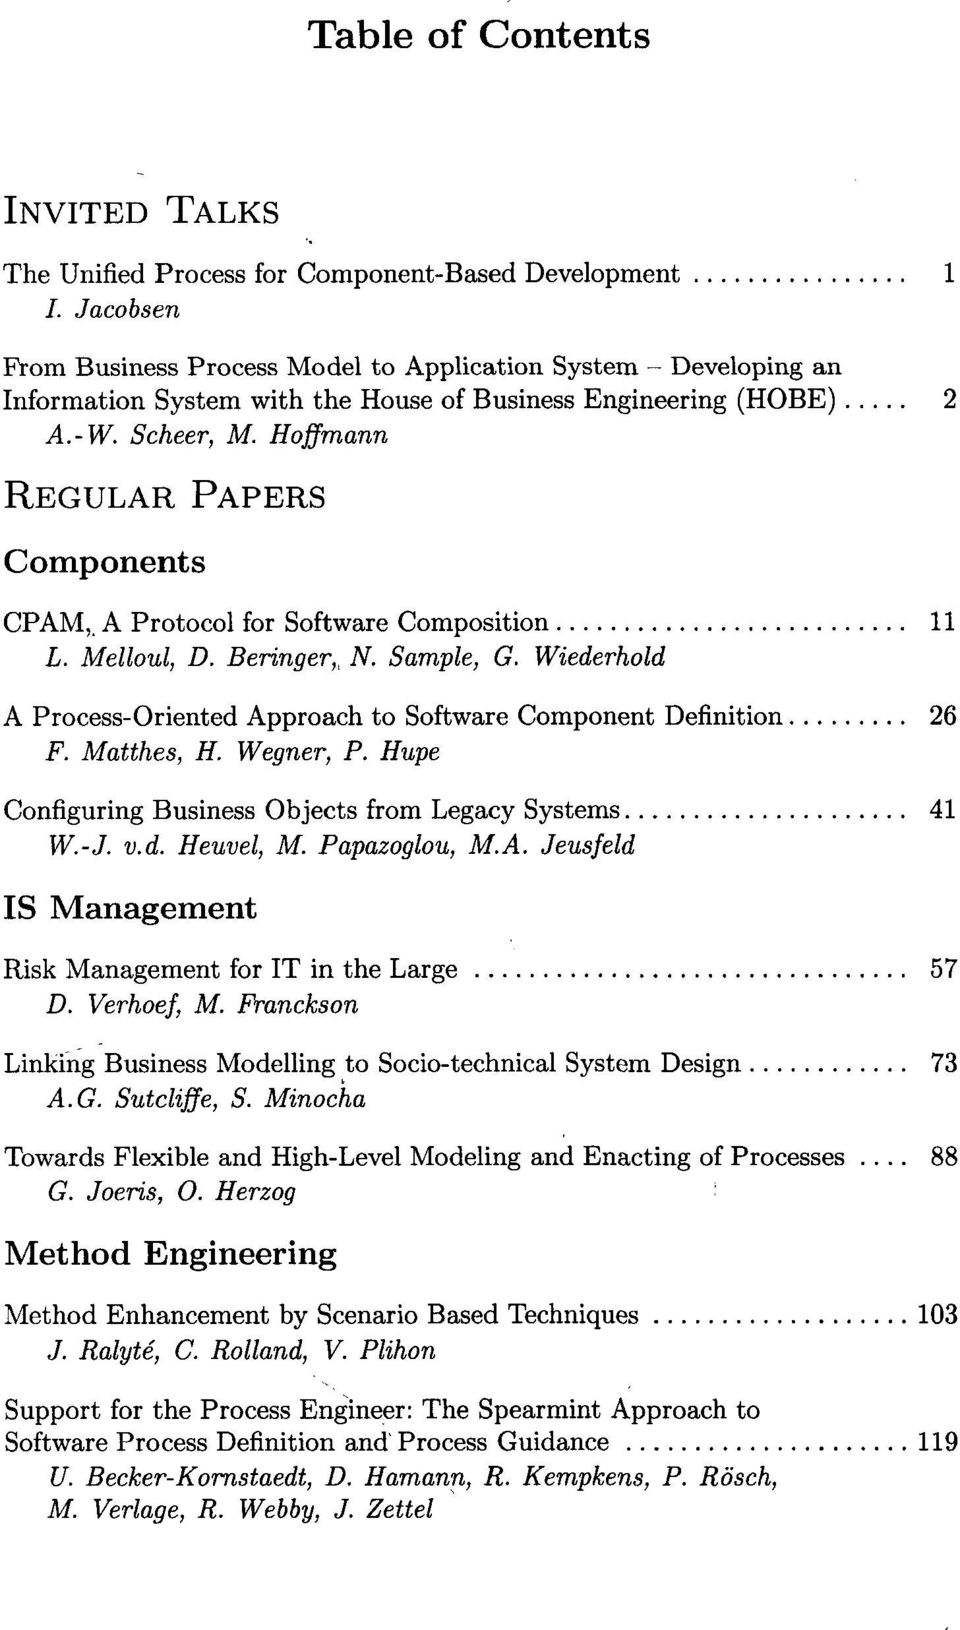 A Protocol for Software Composition 11 L. Melloul, D. Beringer,, N. Sample, G. Wiederhold A Process-Oriented Approach to Software Component Definition 26 F. Matthes, H. Wegner, P.